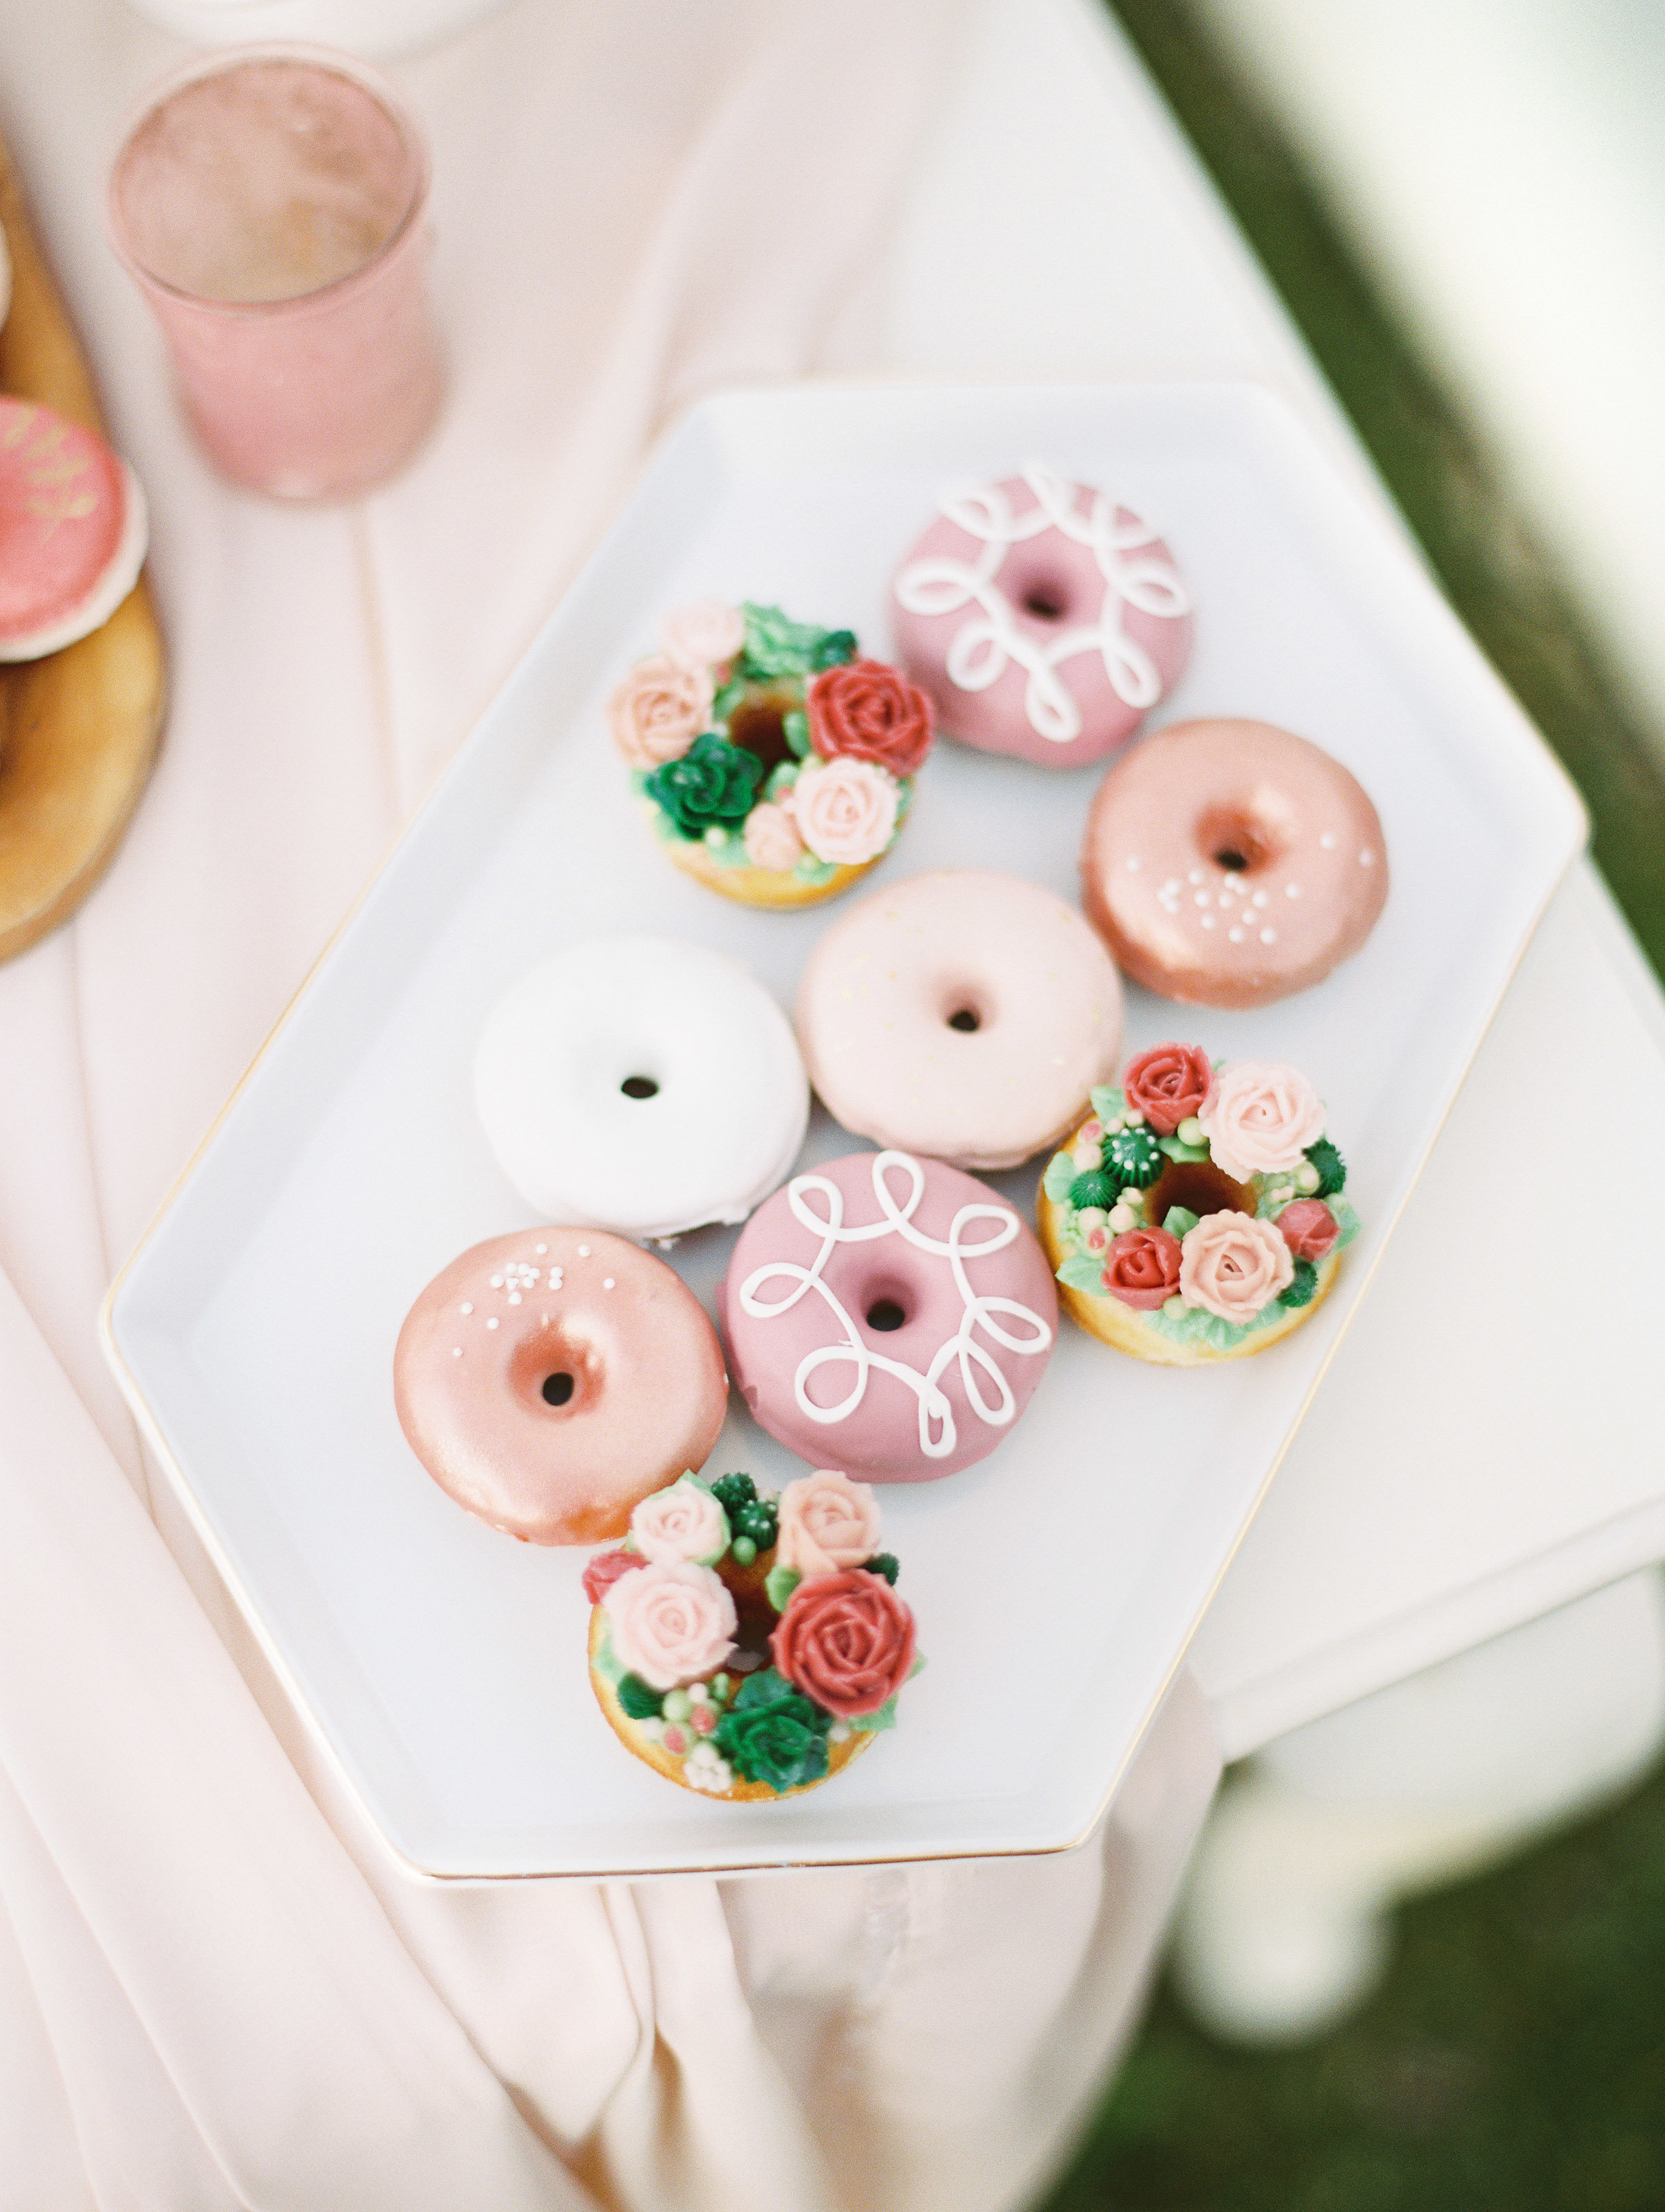 donuts for bridal shower tea party